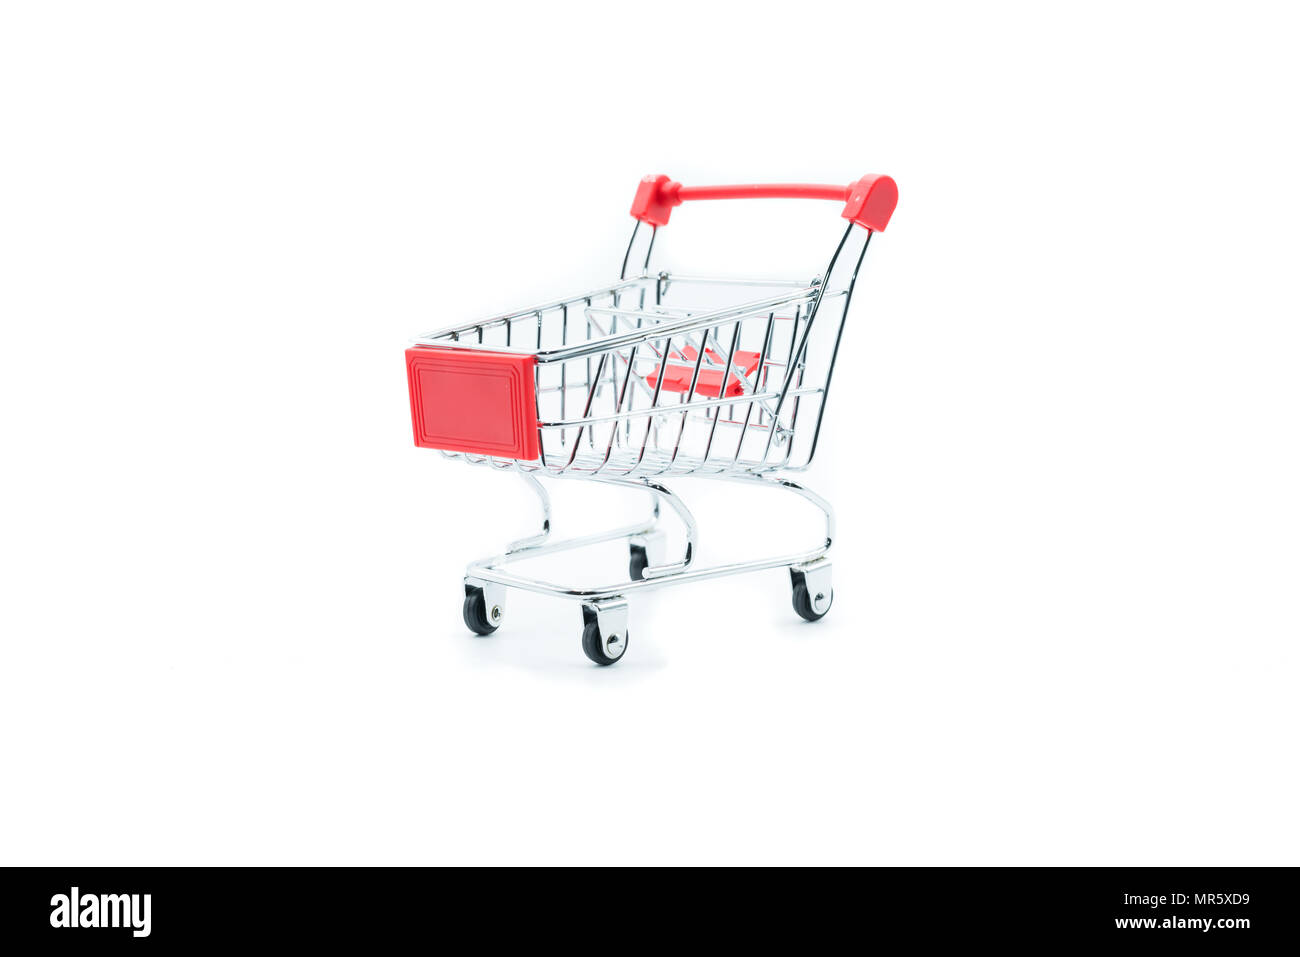 Empty shopping cart trolley isolated on white backgrounds - Stock Image